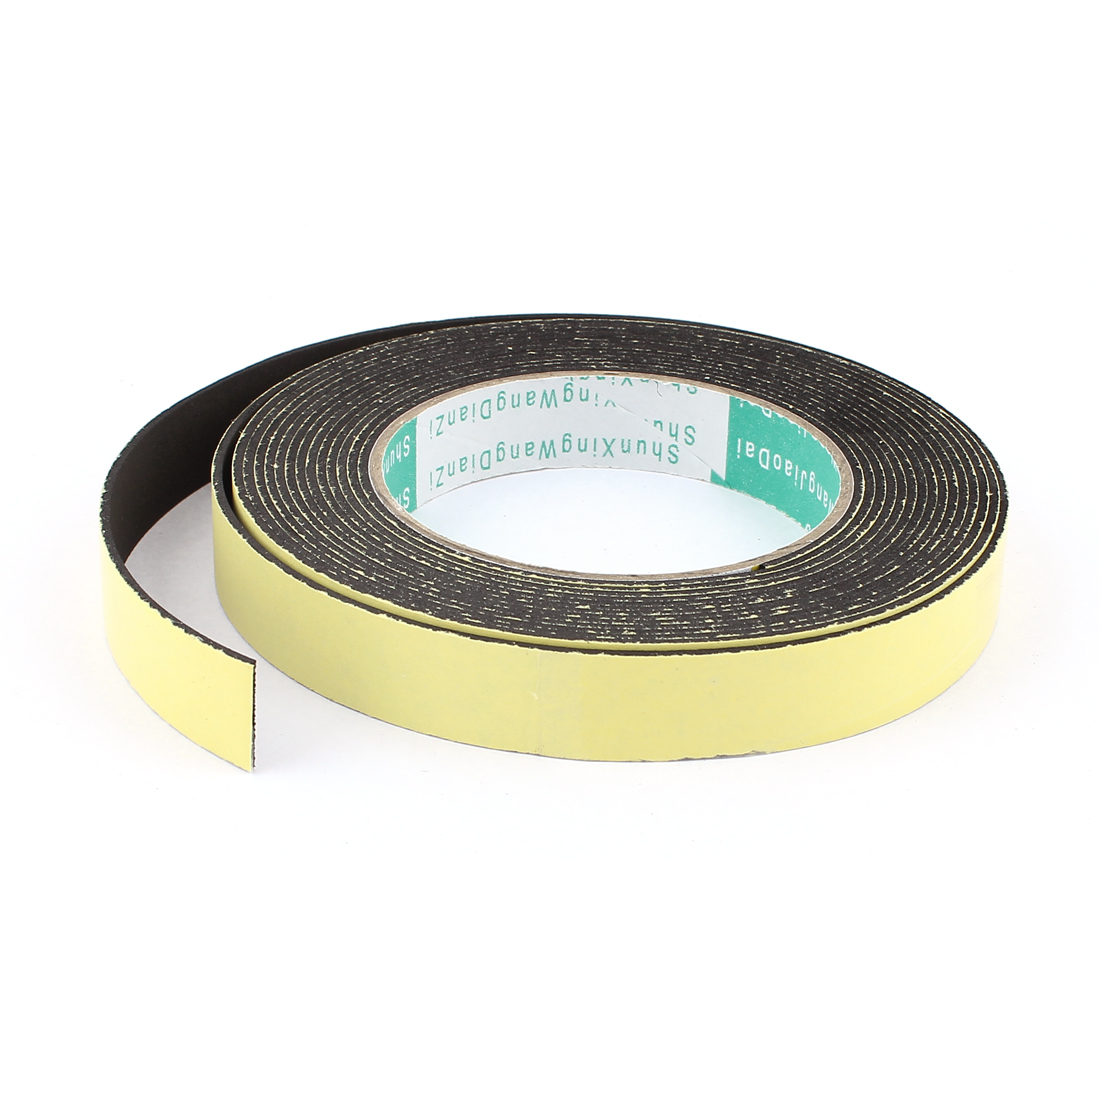 5M 18mm x 1.5mm Single Side Adhesive Foam Sealing Tape for Door Window